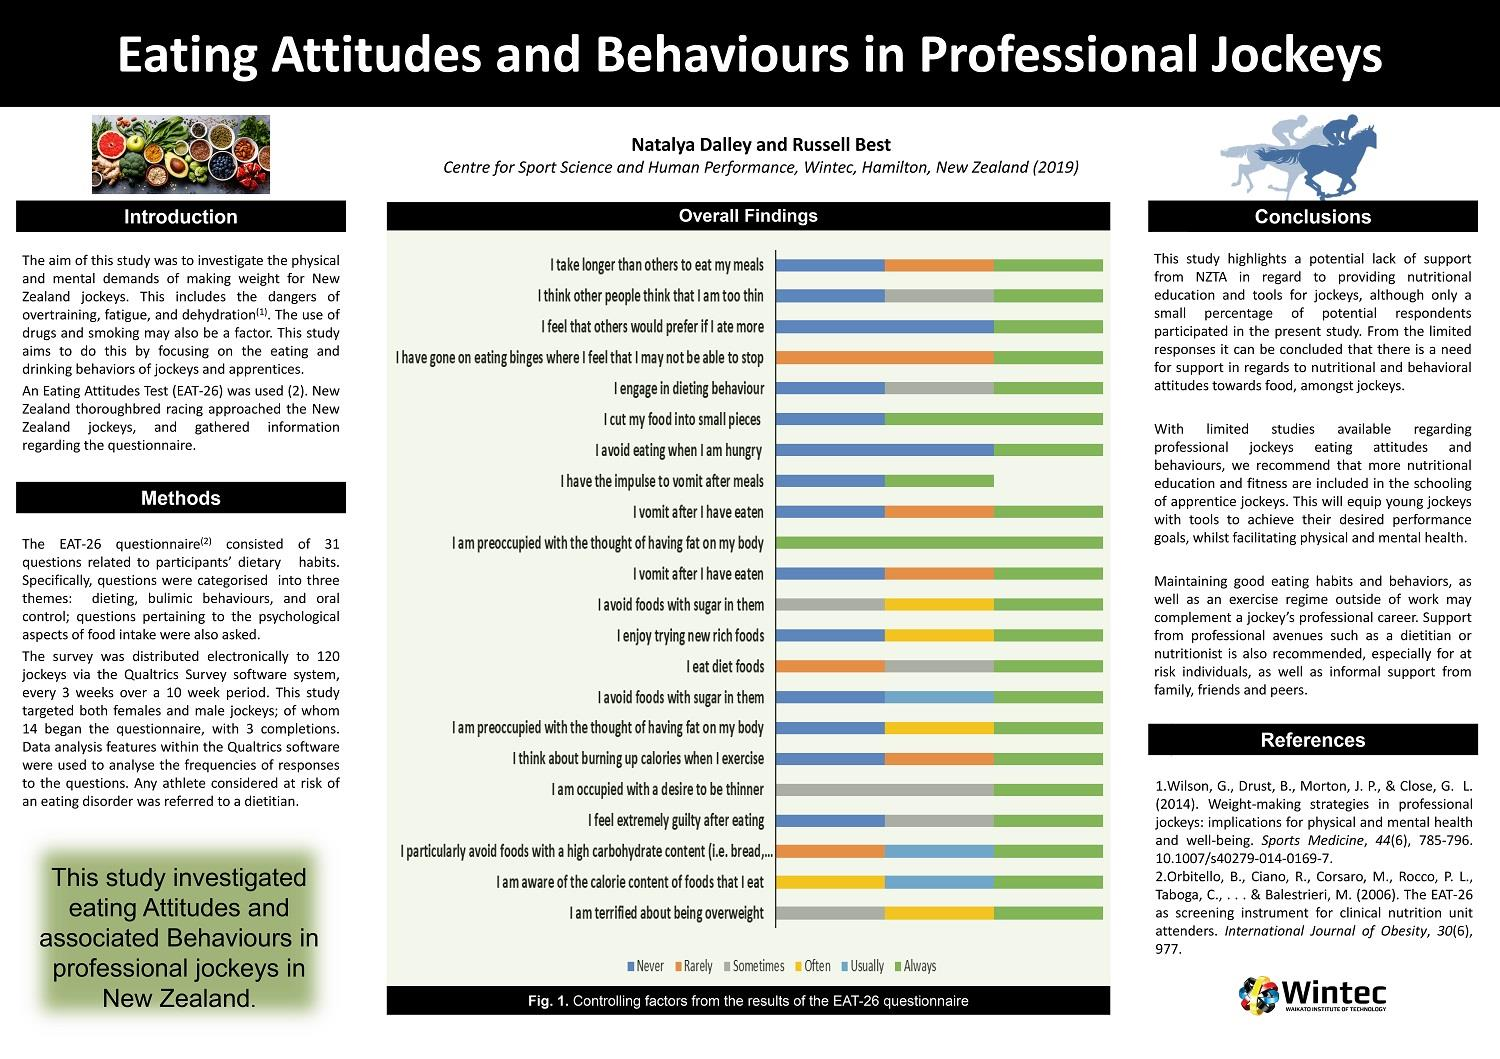 Eating Attitudes and Behaviours in Professional Jockeys